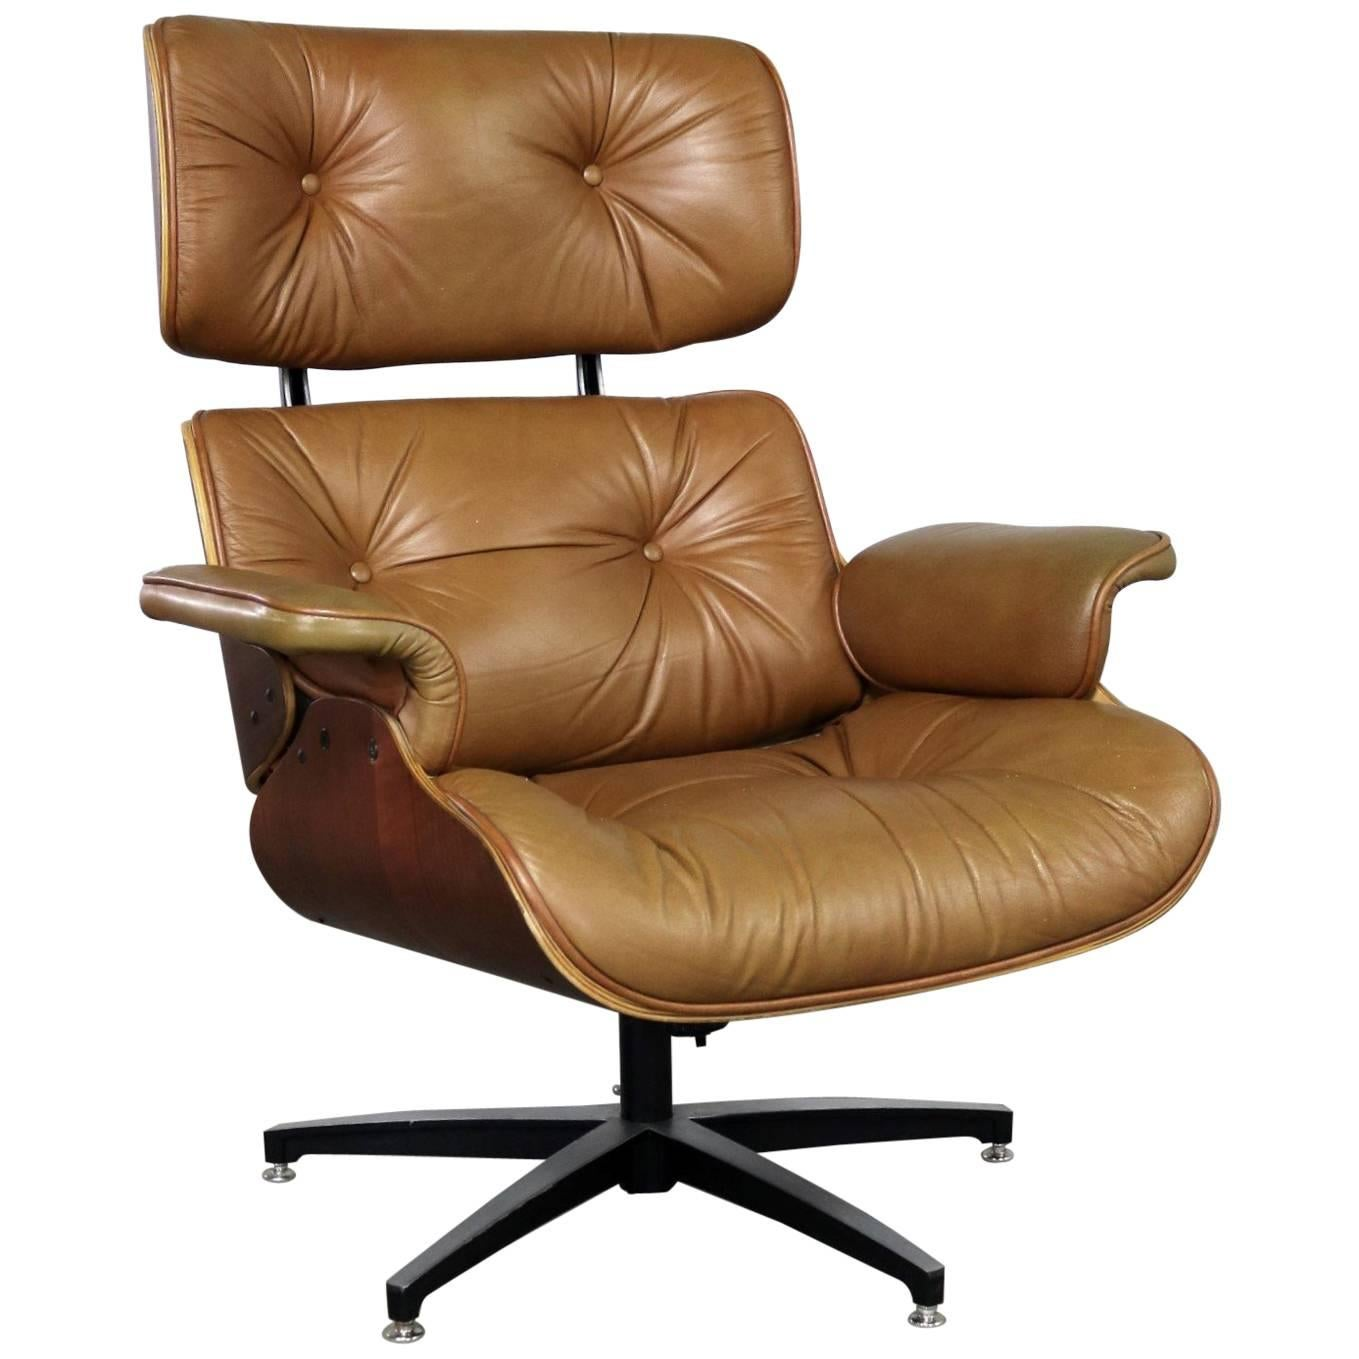 Selig Chair Mid Century Modern Lounge Chair Attributed To Selig Plycraft In Style Of Eames